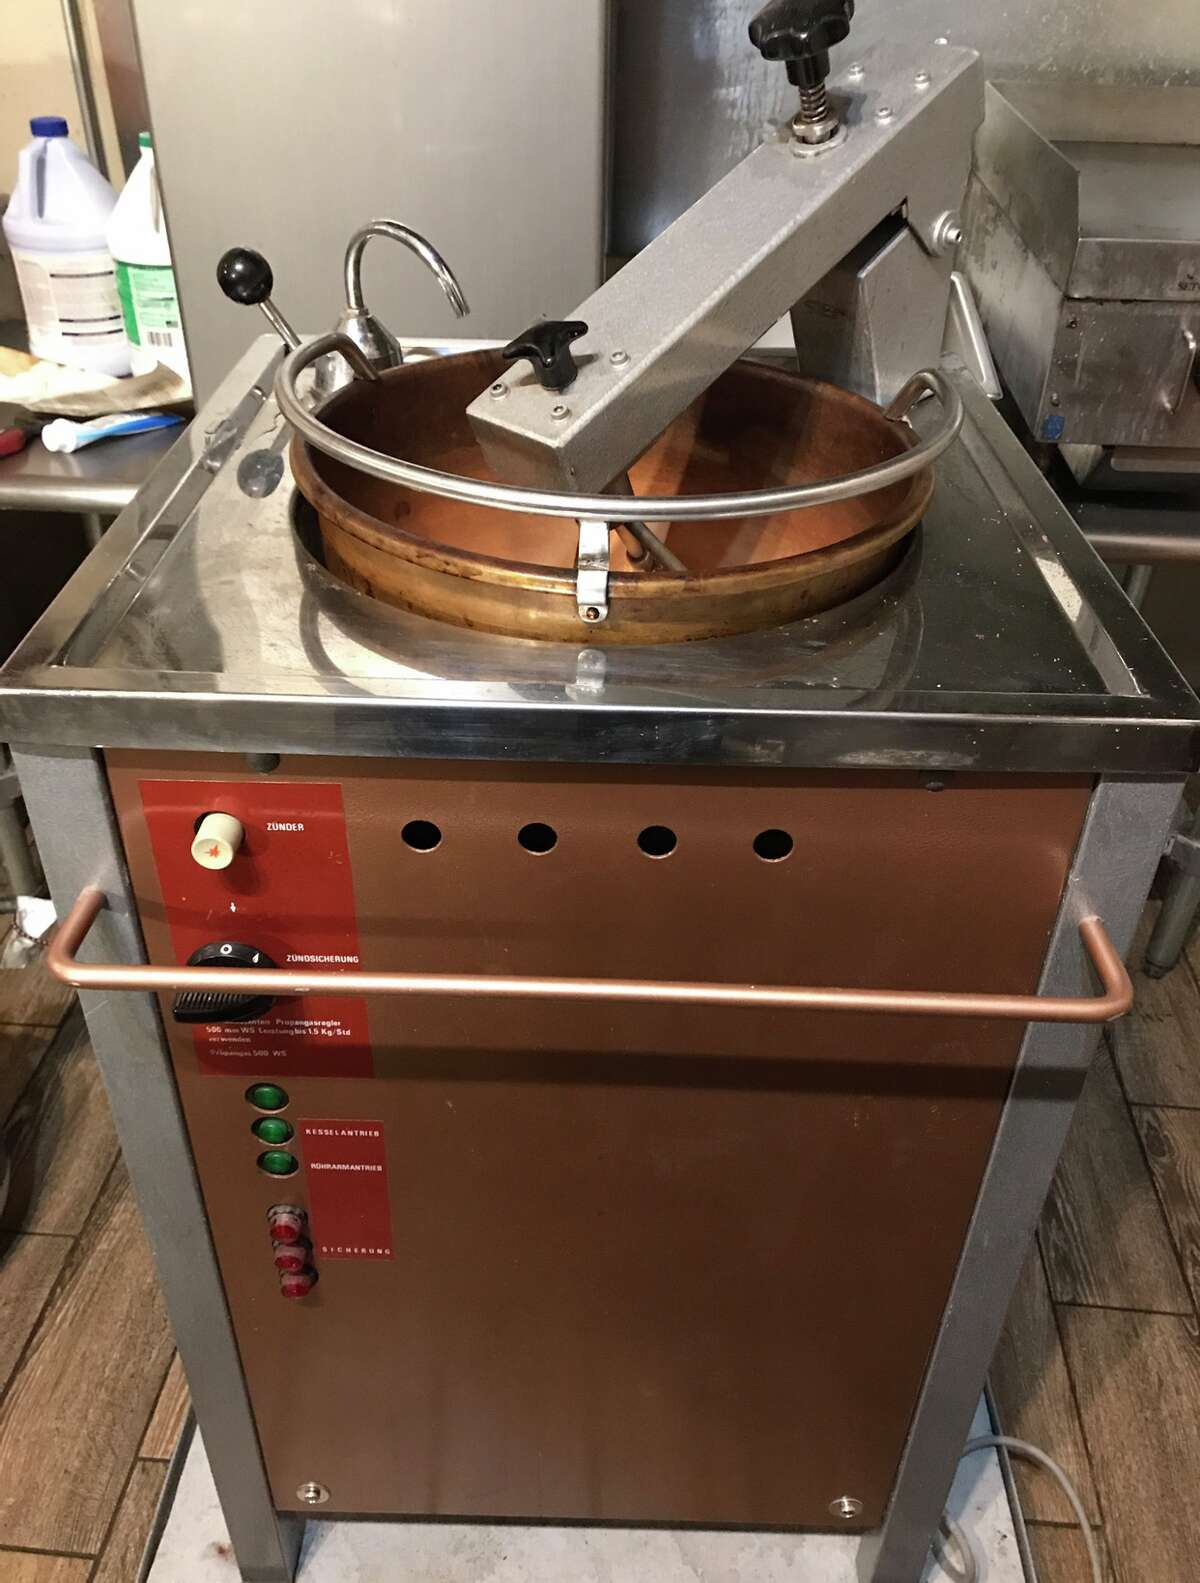 2. I enjoy making cinnamon roasted almonds for my family and friends. I have this awesome German-made copper roasting machine I bought at a garage sale. The almonds are addictive.